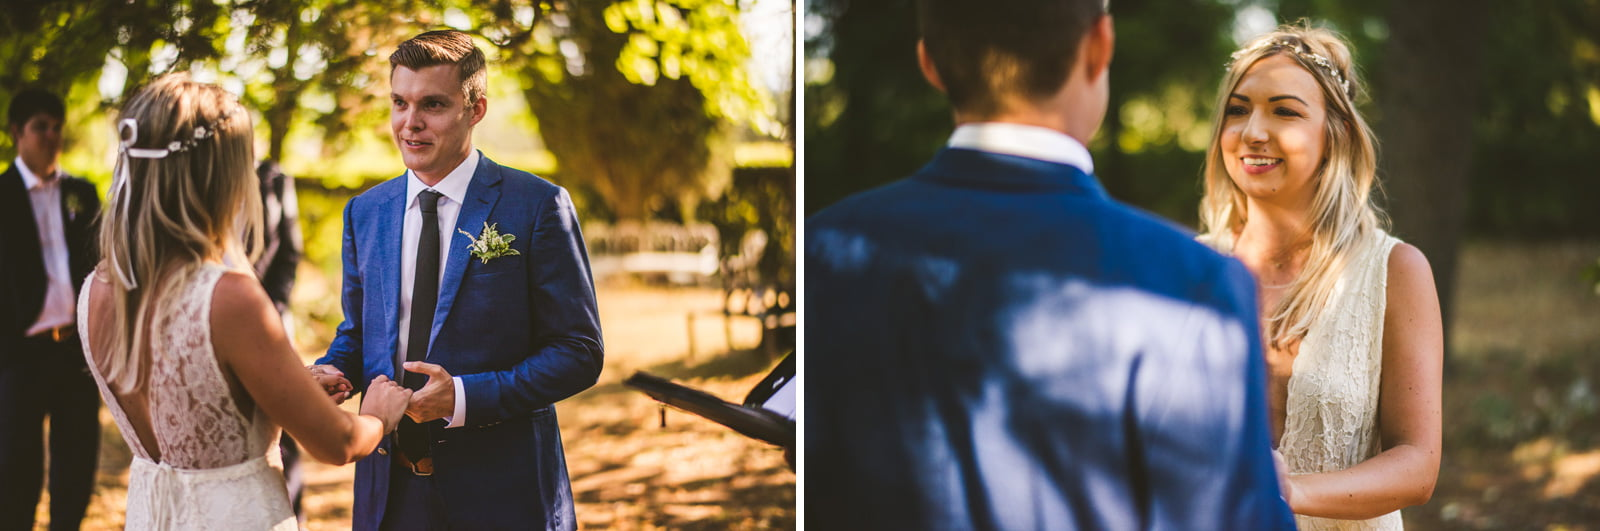 A+L Wedding at Montechiaro, Siena by Federico Pannacci 56